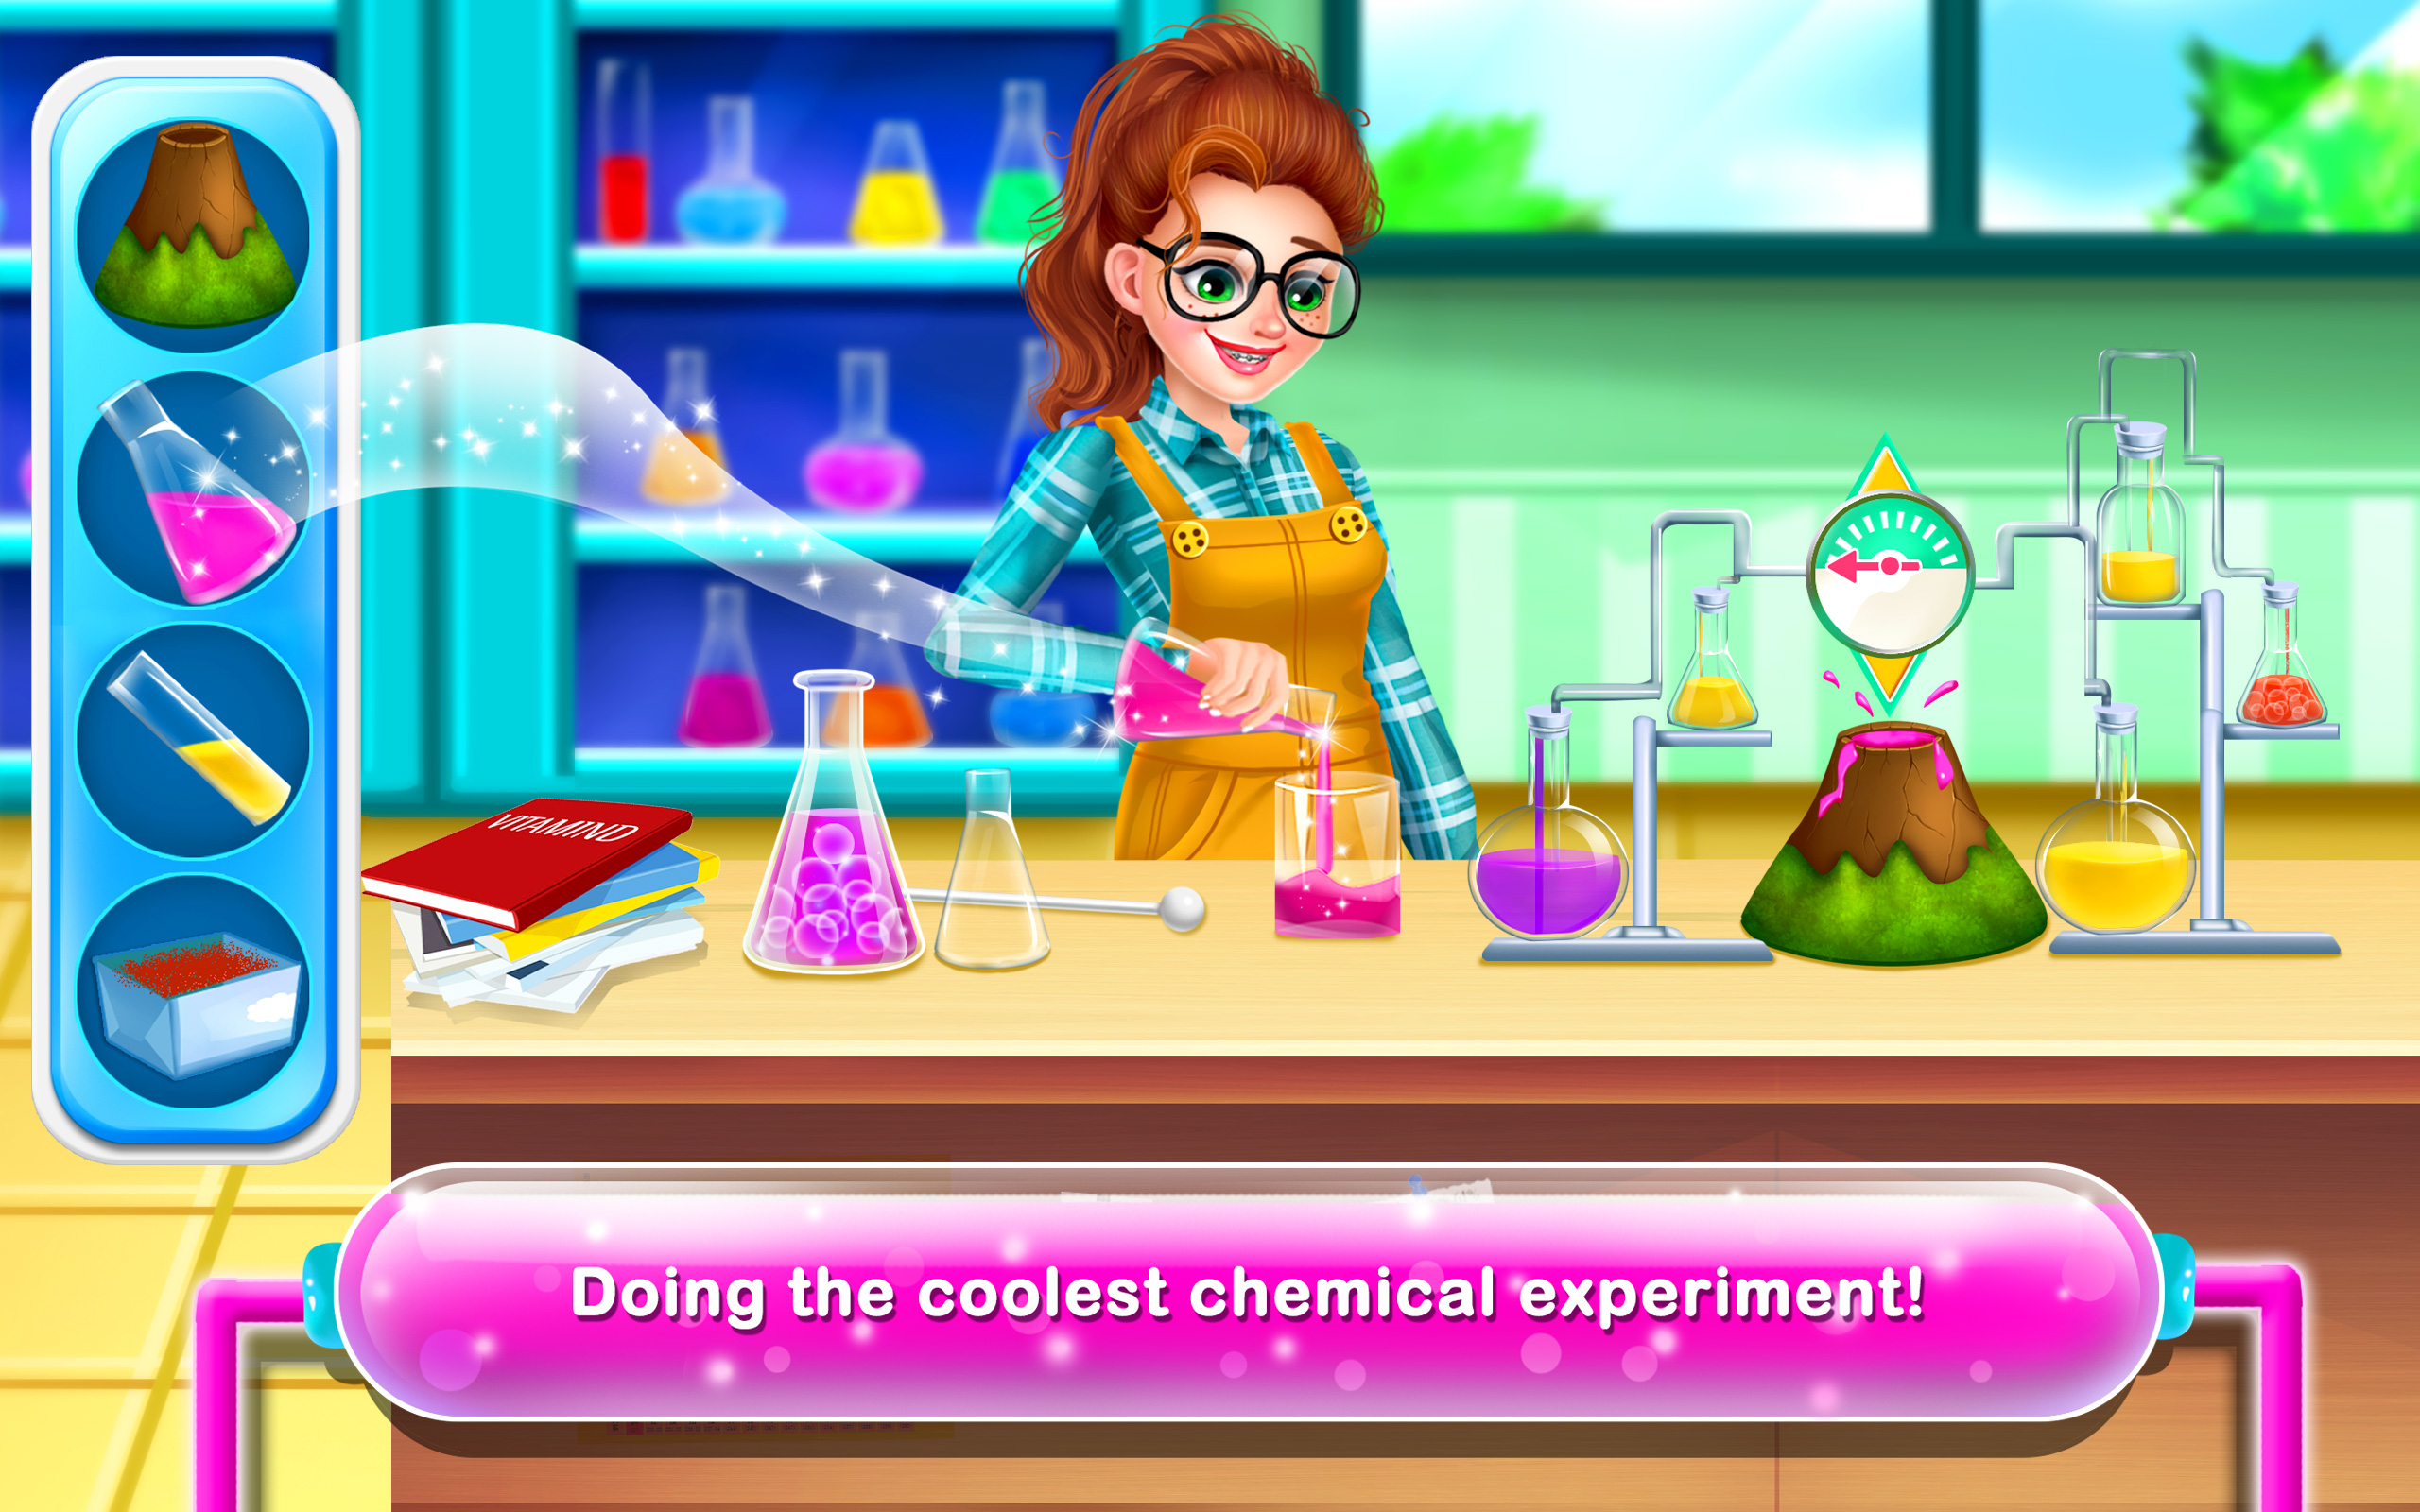 Nerdy Girl 4 - The Science Star